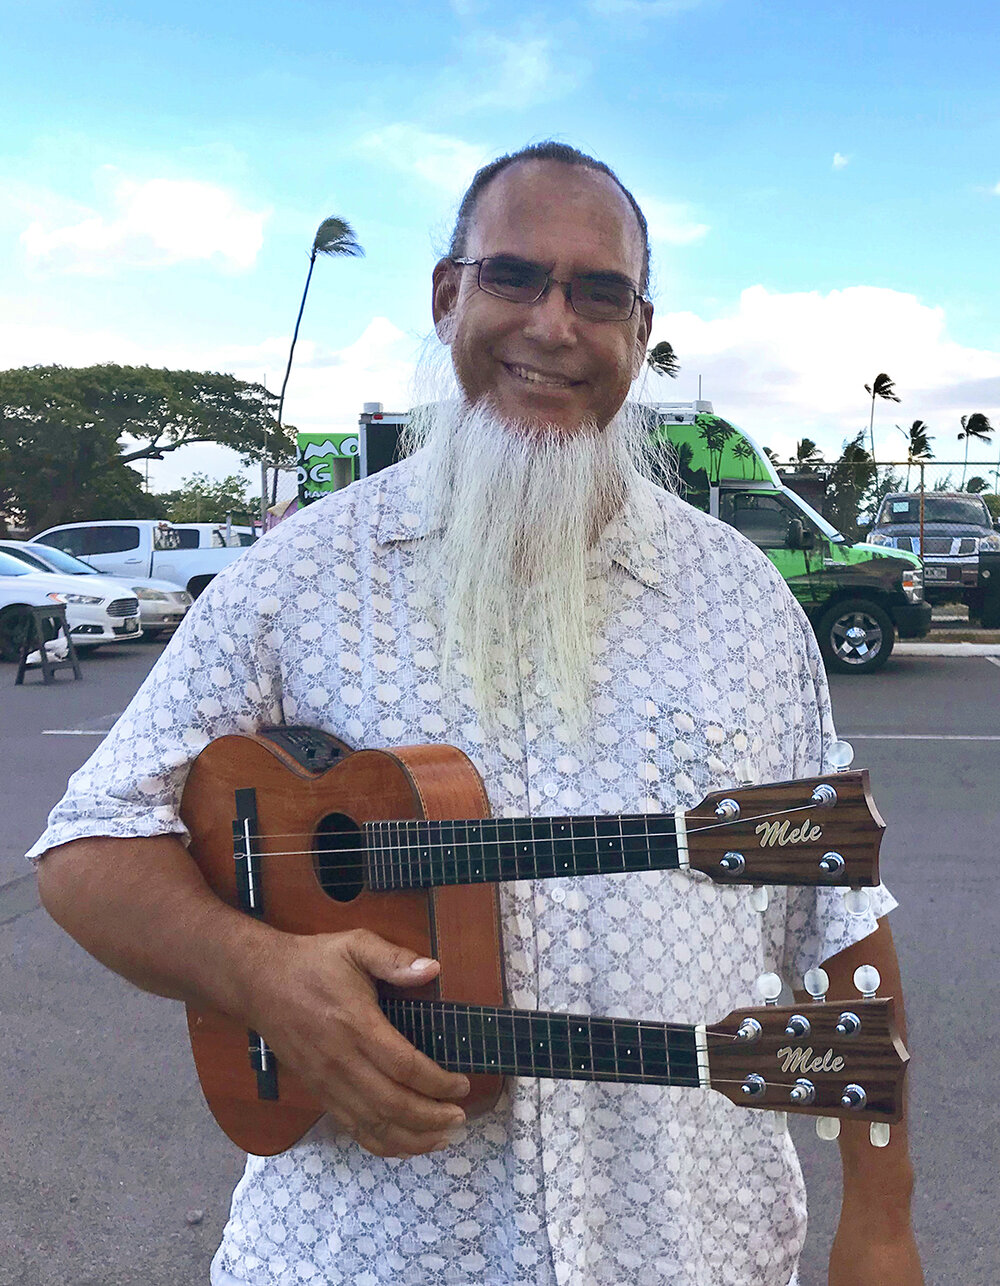 Bring your ukulele to the Maui Sunday Market on September 15, 4:45pm – 5:15pm for free ulukele lessons with Corey Char.